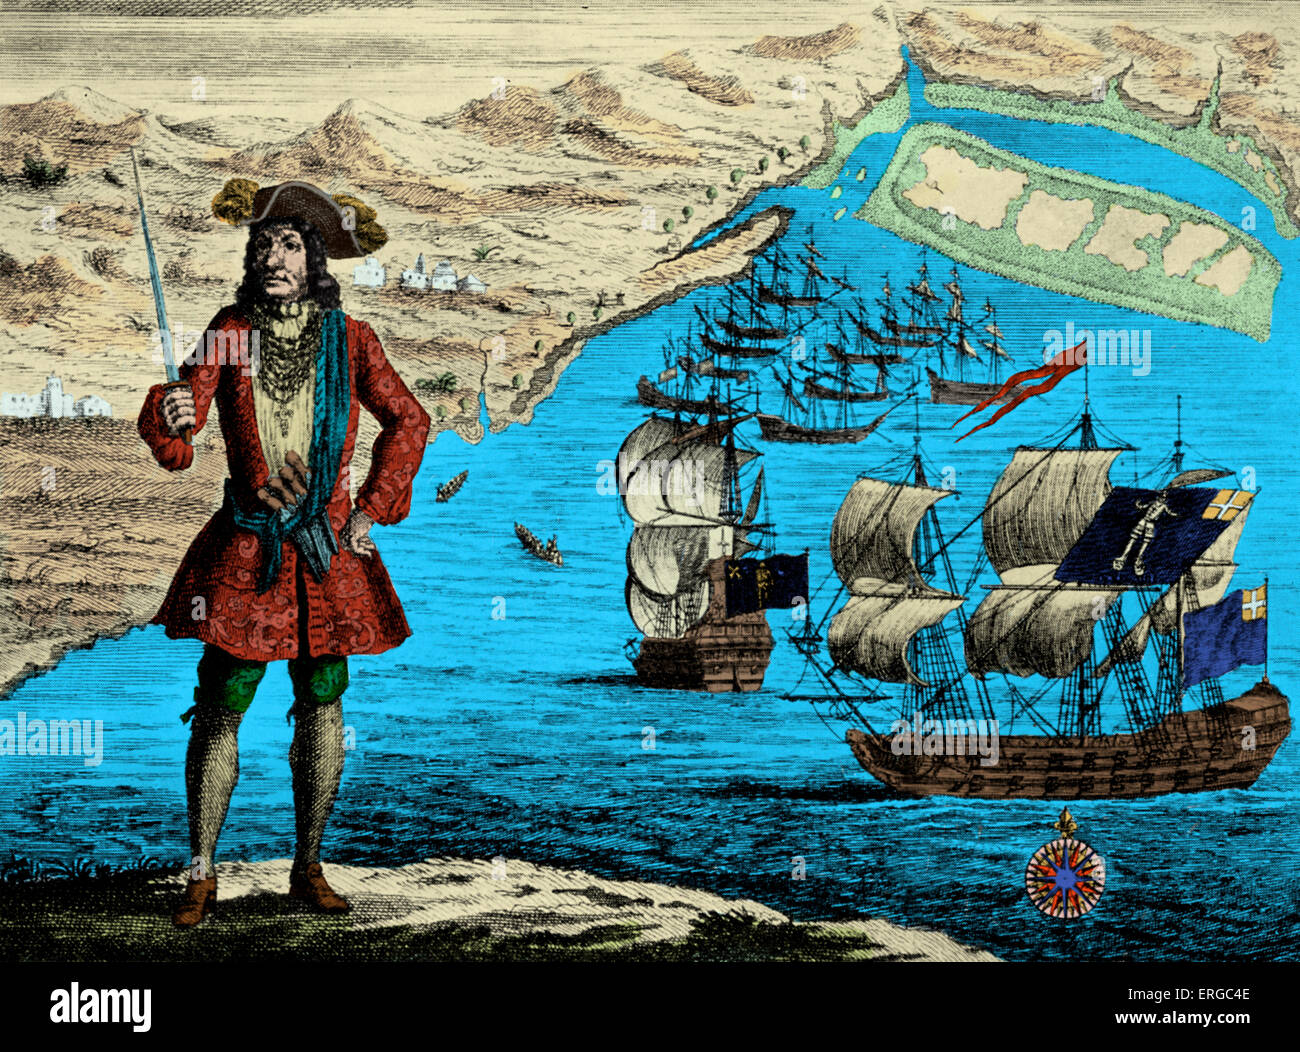 Captain Bartholomew Roberts with two ships, 'The Royal Fortune' and 'The Ranger' on the coast of - Stock Image